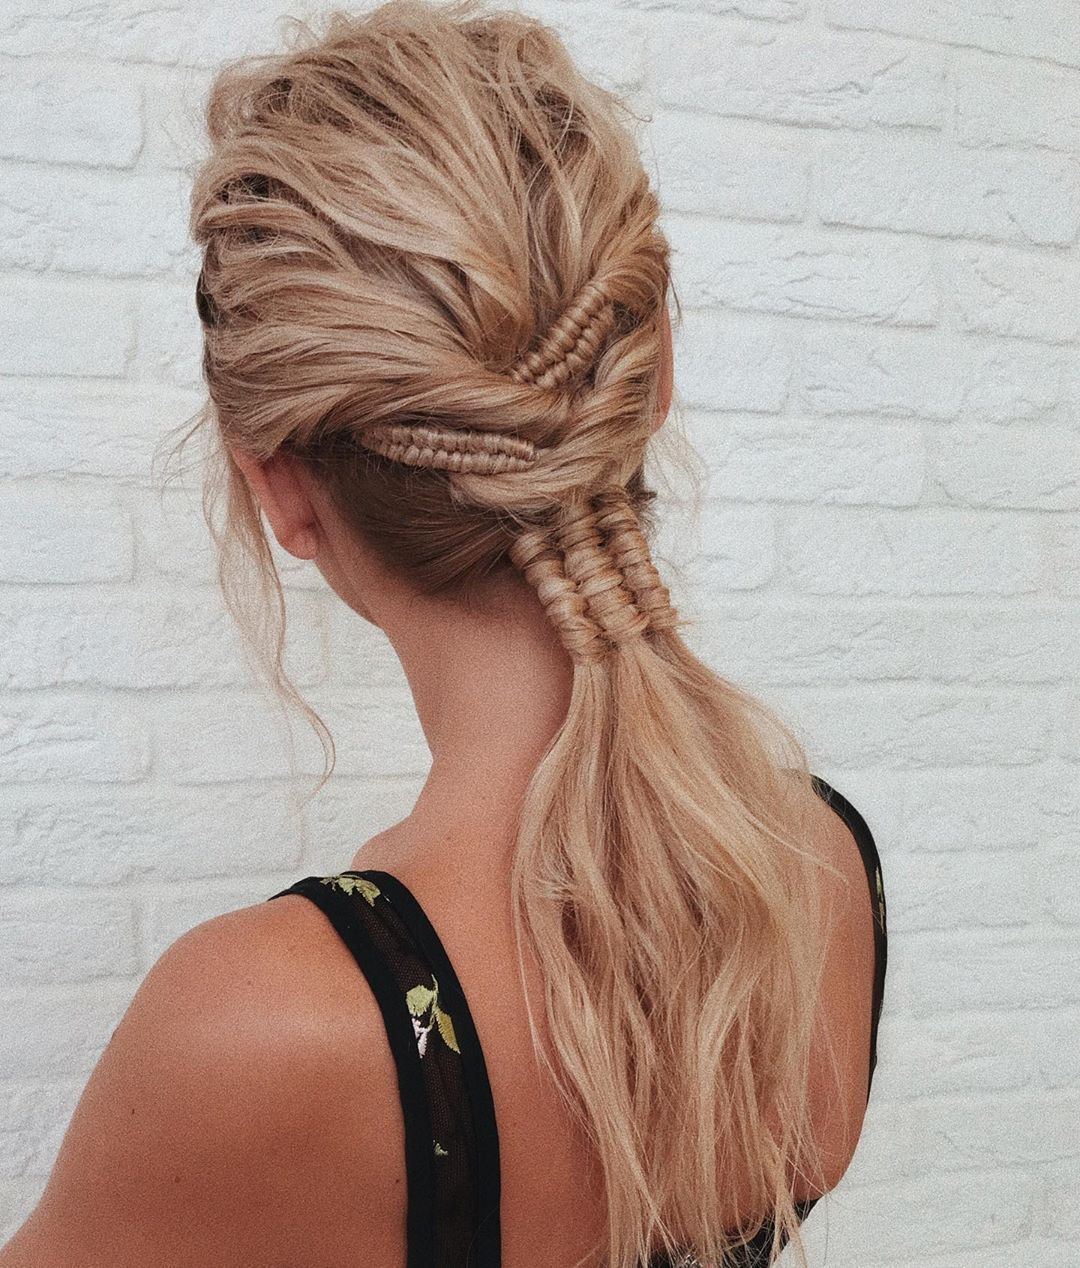 Braided Hairstyles For Kids What Braid Hairstyles For Long Hair Braided Hairstyles For Kids In 2020 Braided Hairstyles Braids For Long Hair Long Hair Styles